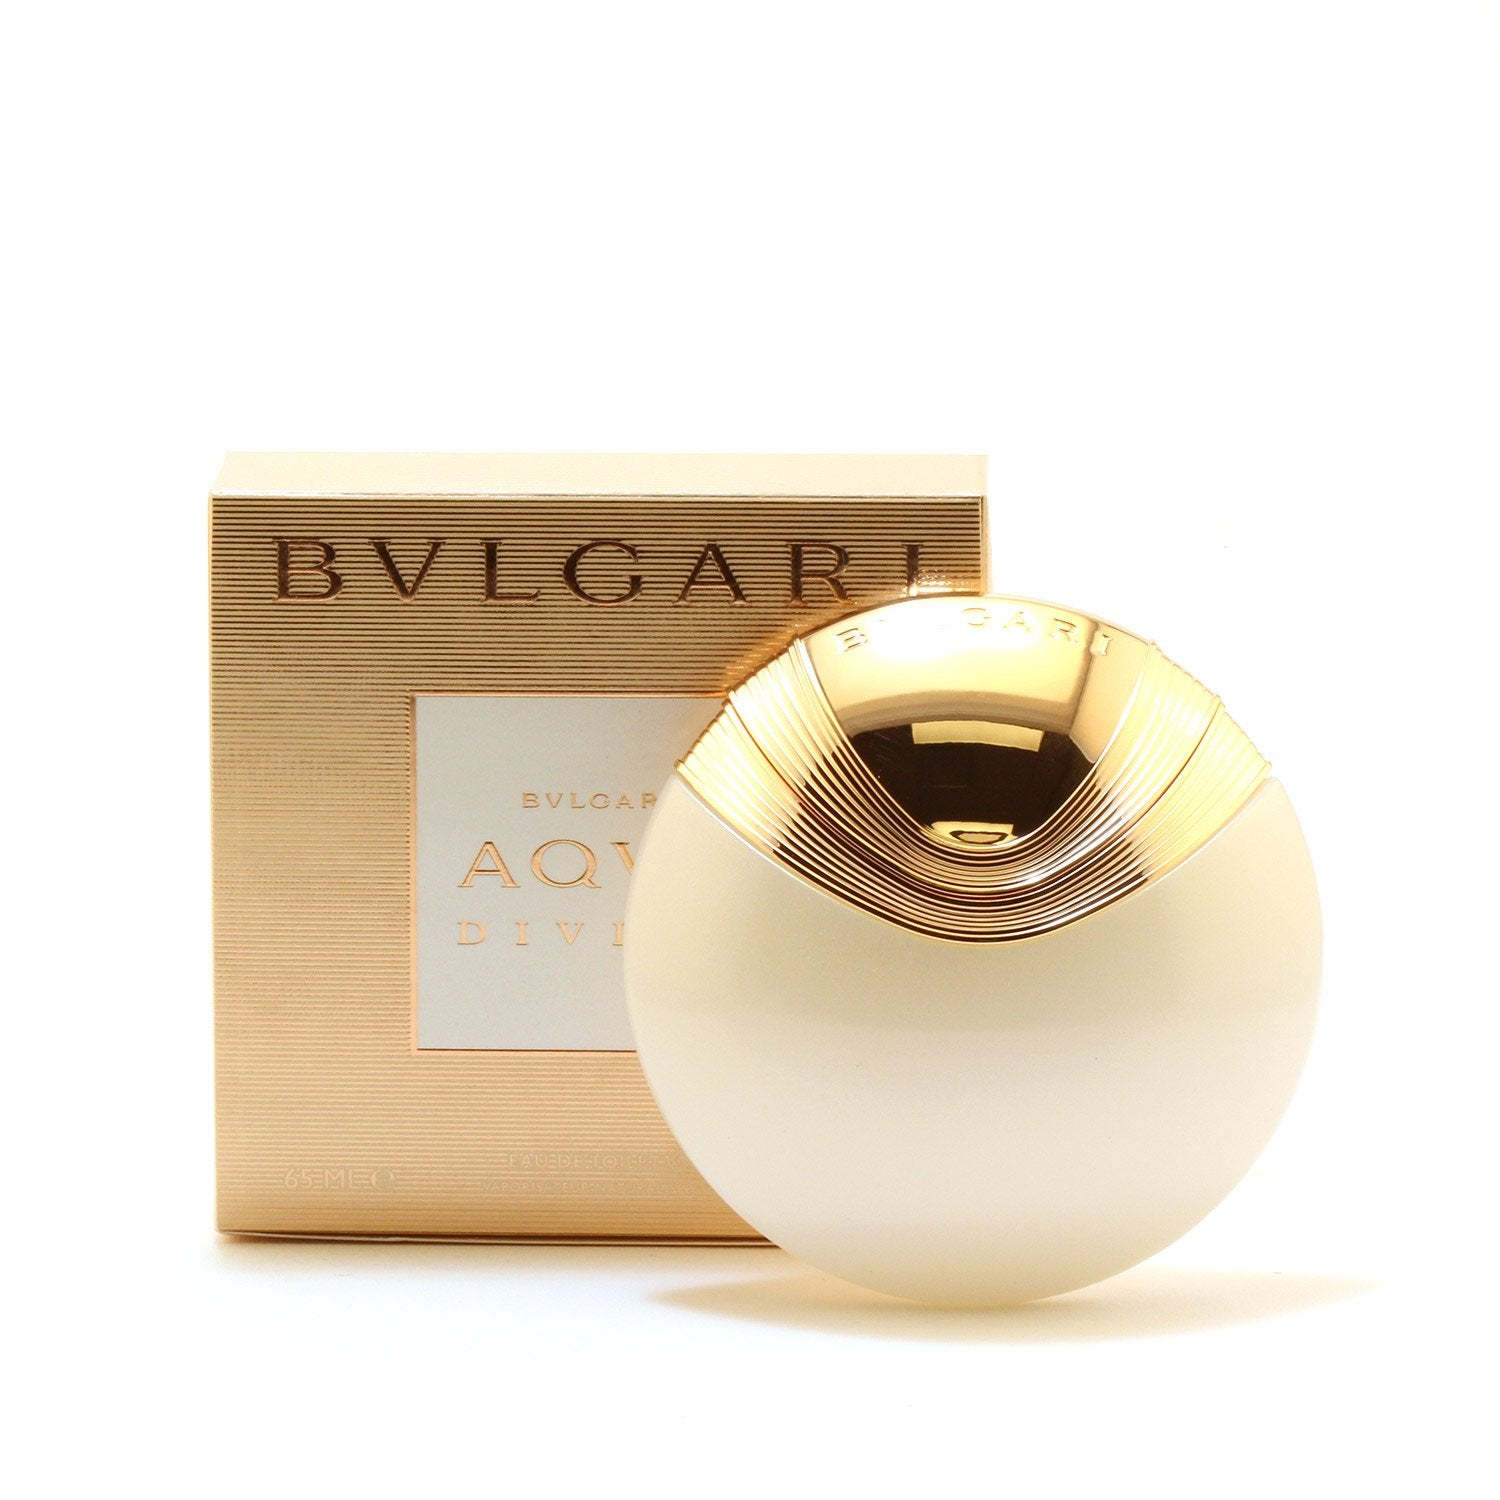 306b46c82a42 Perfume - BVLGARI AQUA DIVINA FOR WOMEN - EAU DE TOILETTE SPRAY, 2.2 OZ